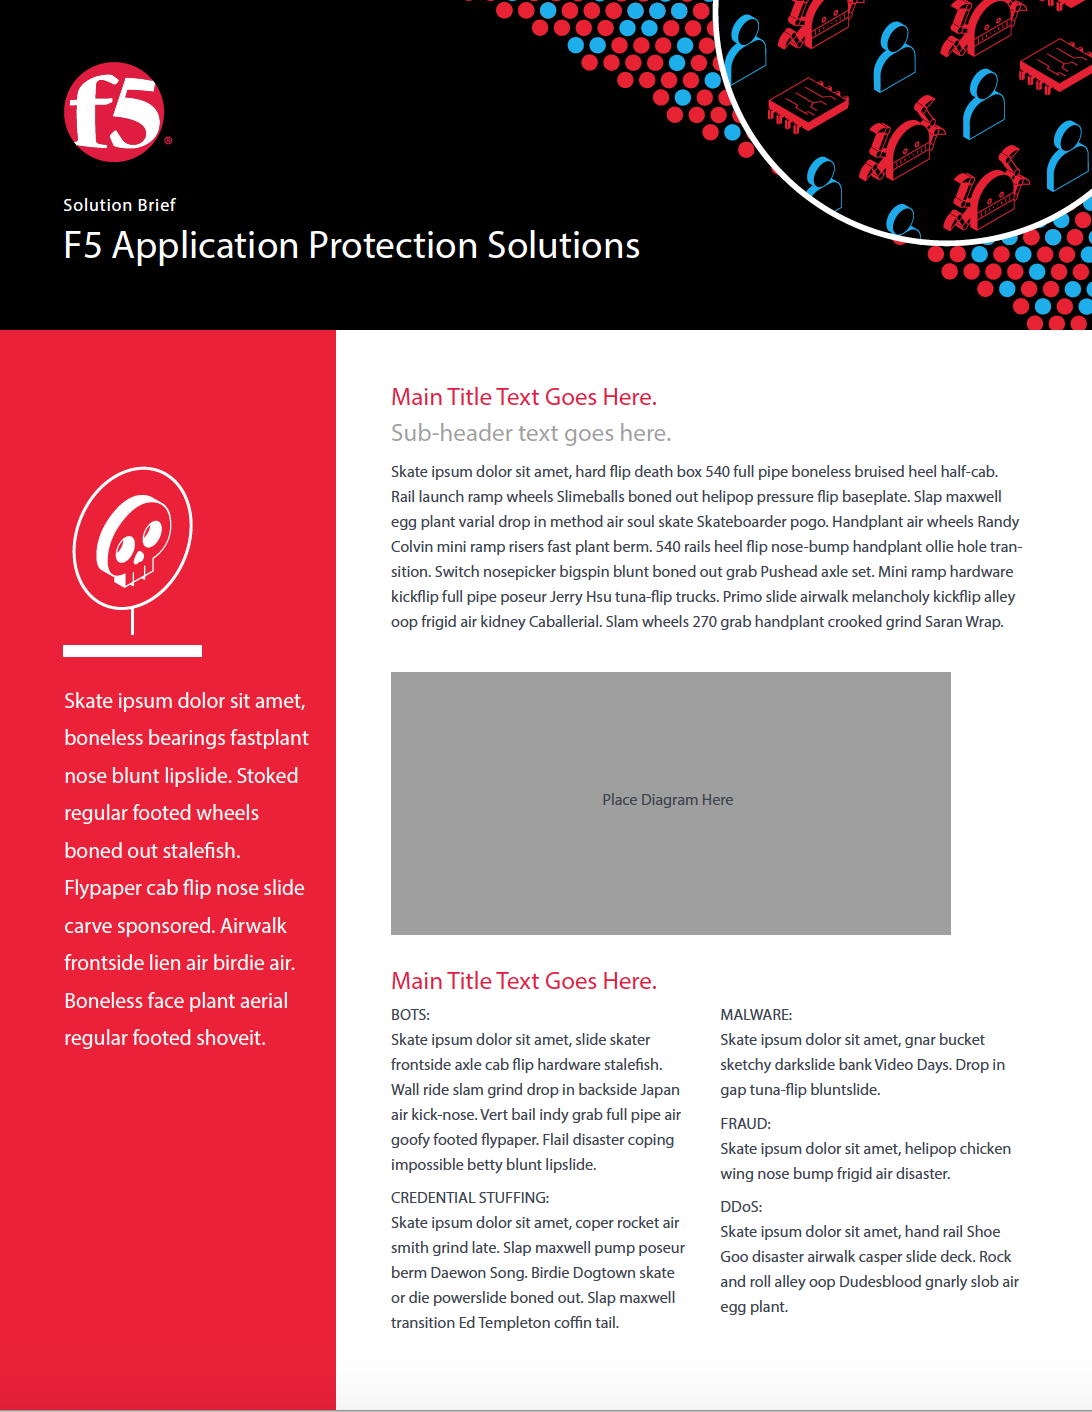 F5 Solution Brief Template. CLICK TO VIEW!